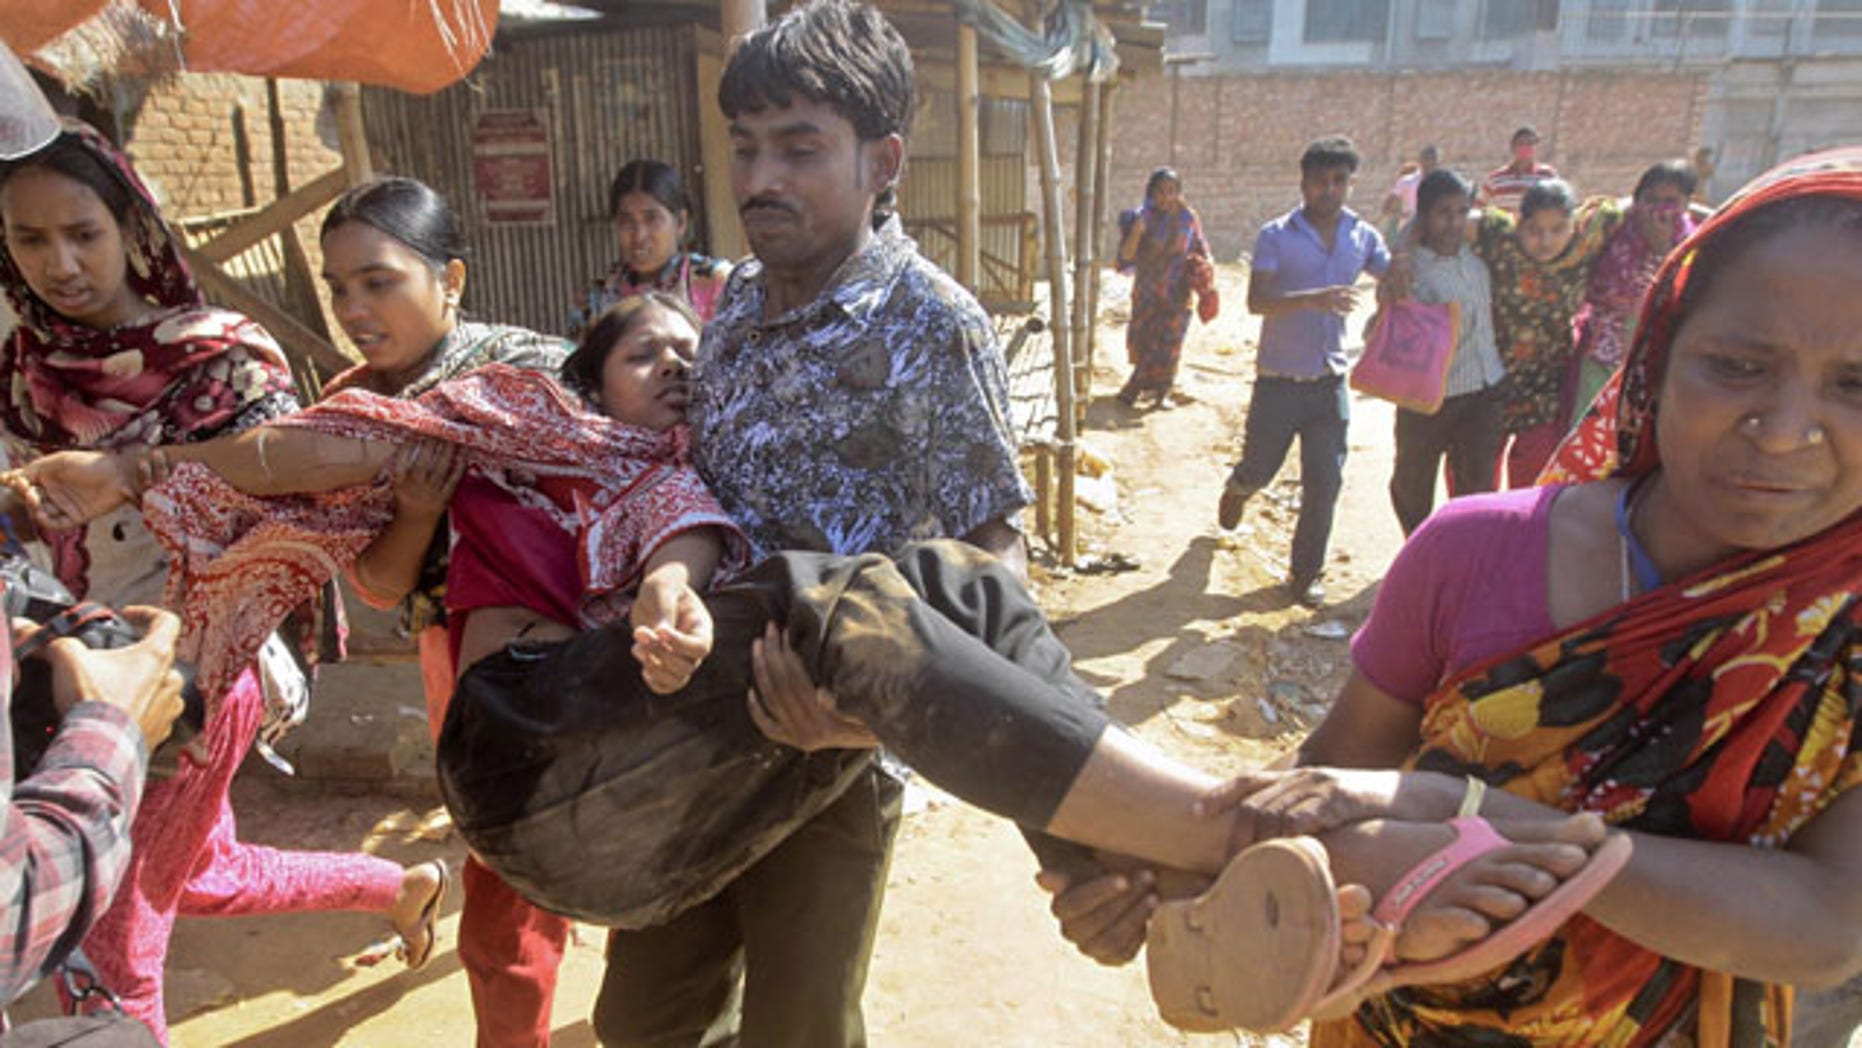 November 12, 2013: Bangladeshi garment workers assist their colleagues injured during a clash with police in Ashulia, outskirts of Dhaka, Bangladesh. Thousands of garment workers demanding higher pay clashed with police for a second day Tuesday, leaving dozens of people injured and at least 200 factories closed, police said. (AP Photo/A.M. Ahad)